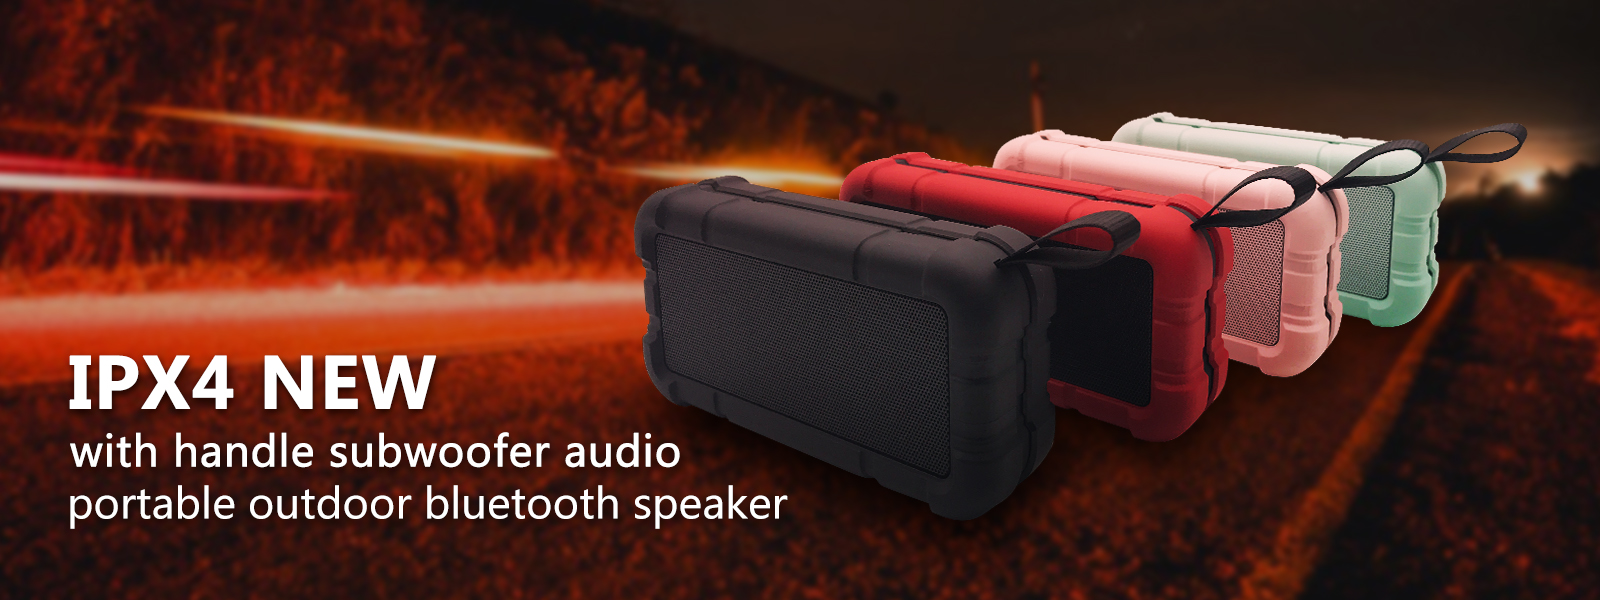 mini portable bluetooth speaker banner